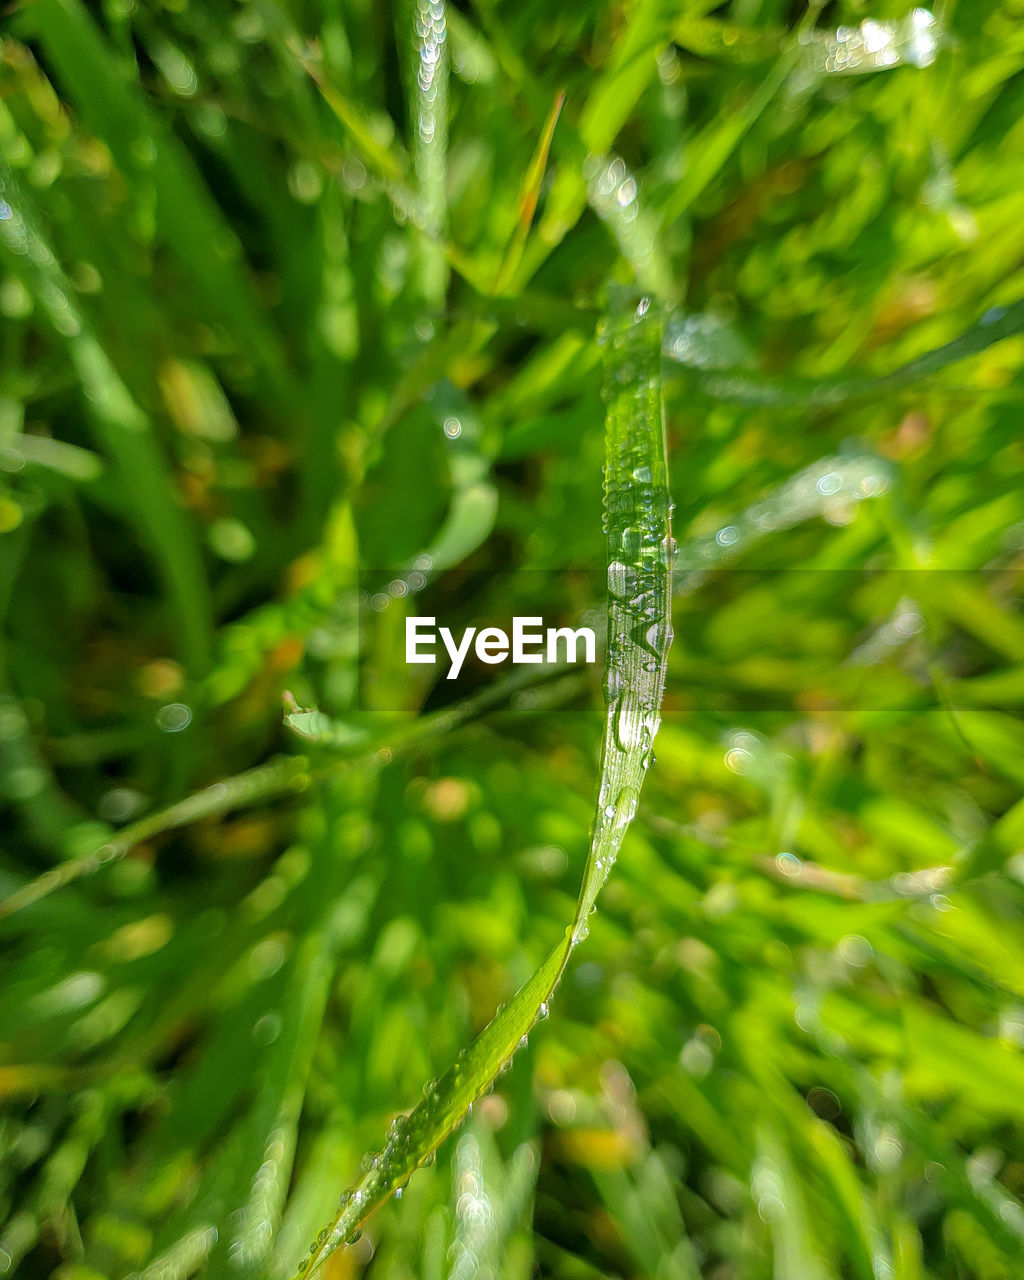 green color, plant, growth, water, drop, close-up, beauty in nature, nature, day, no people, wet, selective focus, freshness, plant part, leaf, focus on foreground, outdoors, green, fragility, blade of grass, dew, purity, raindrop